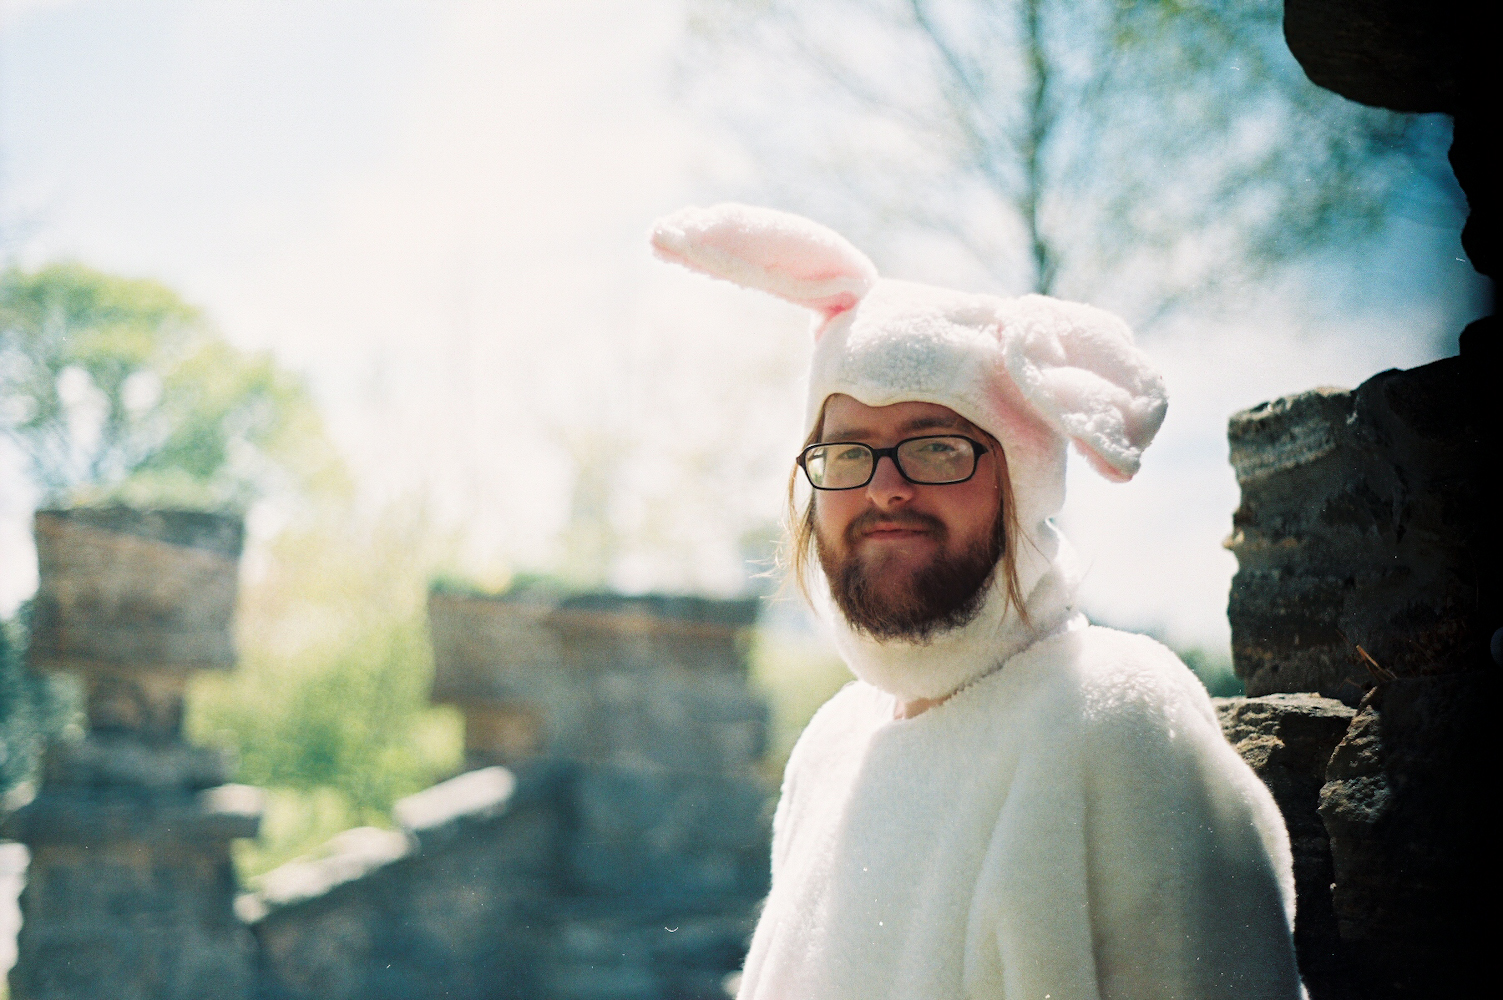 16_the_easter_bunny.jpg